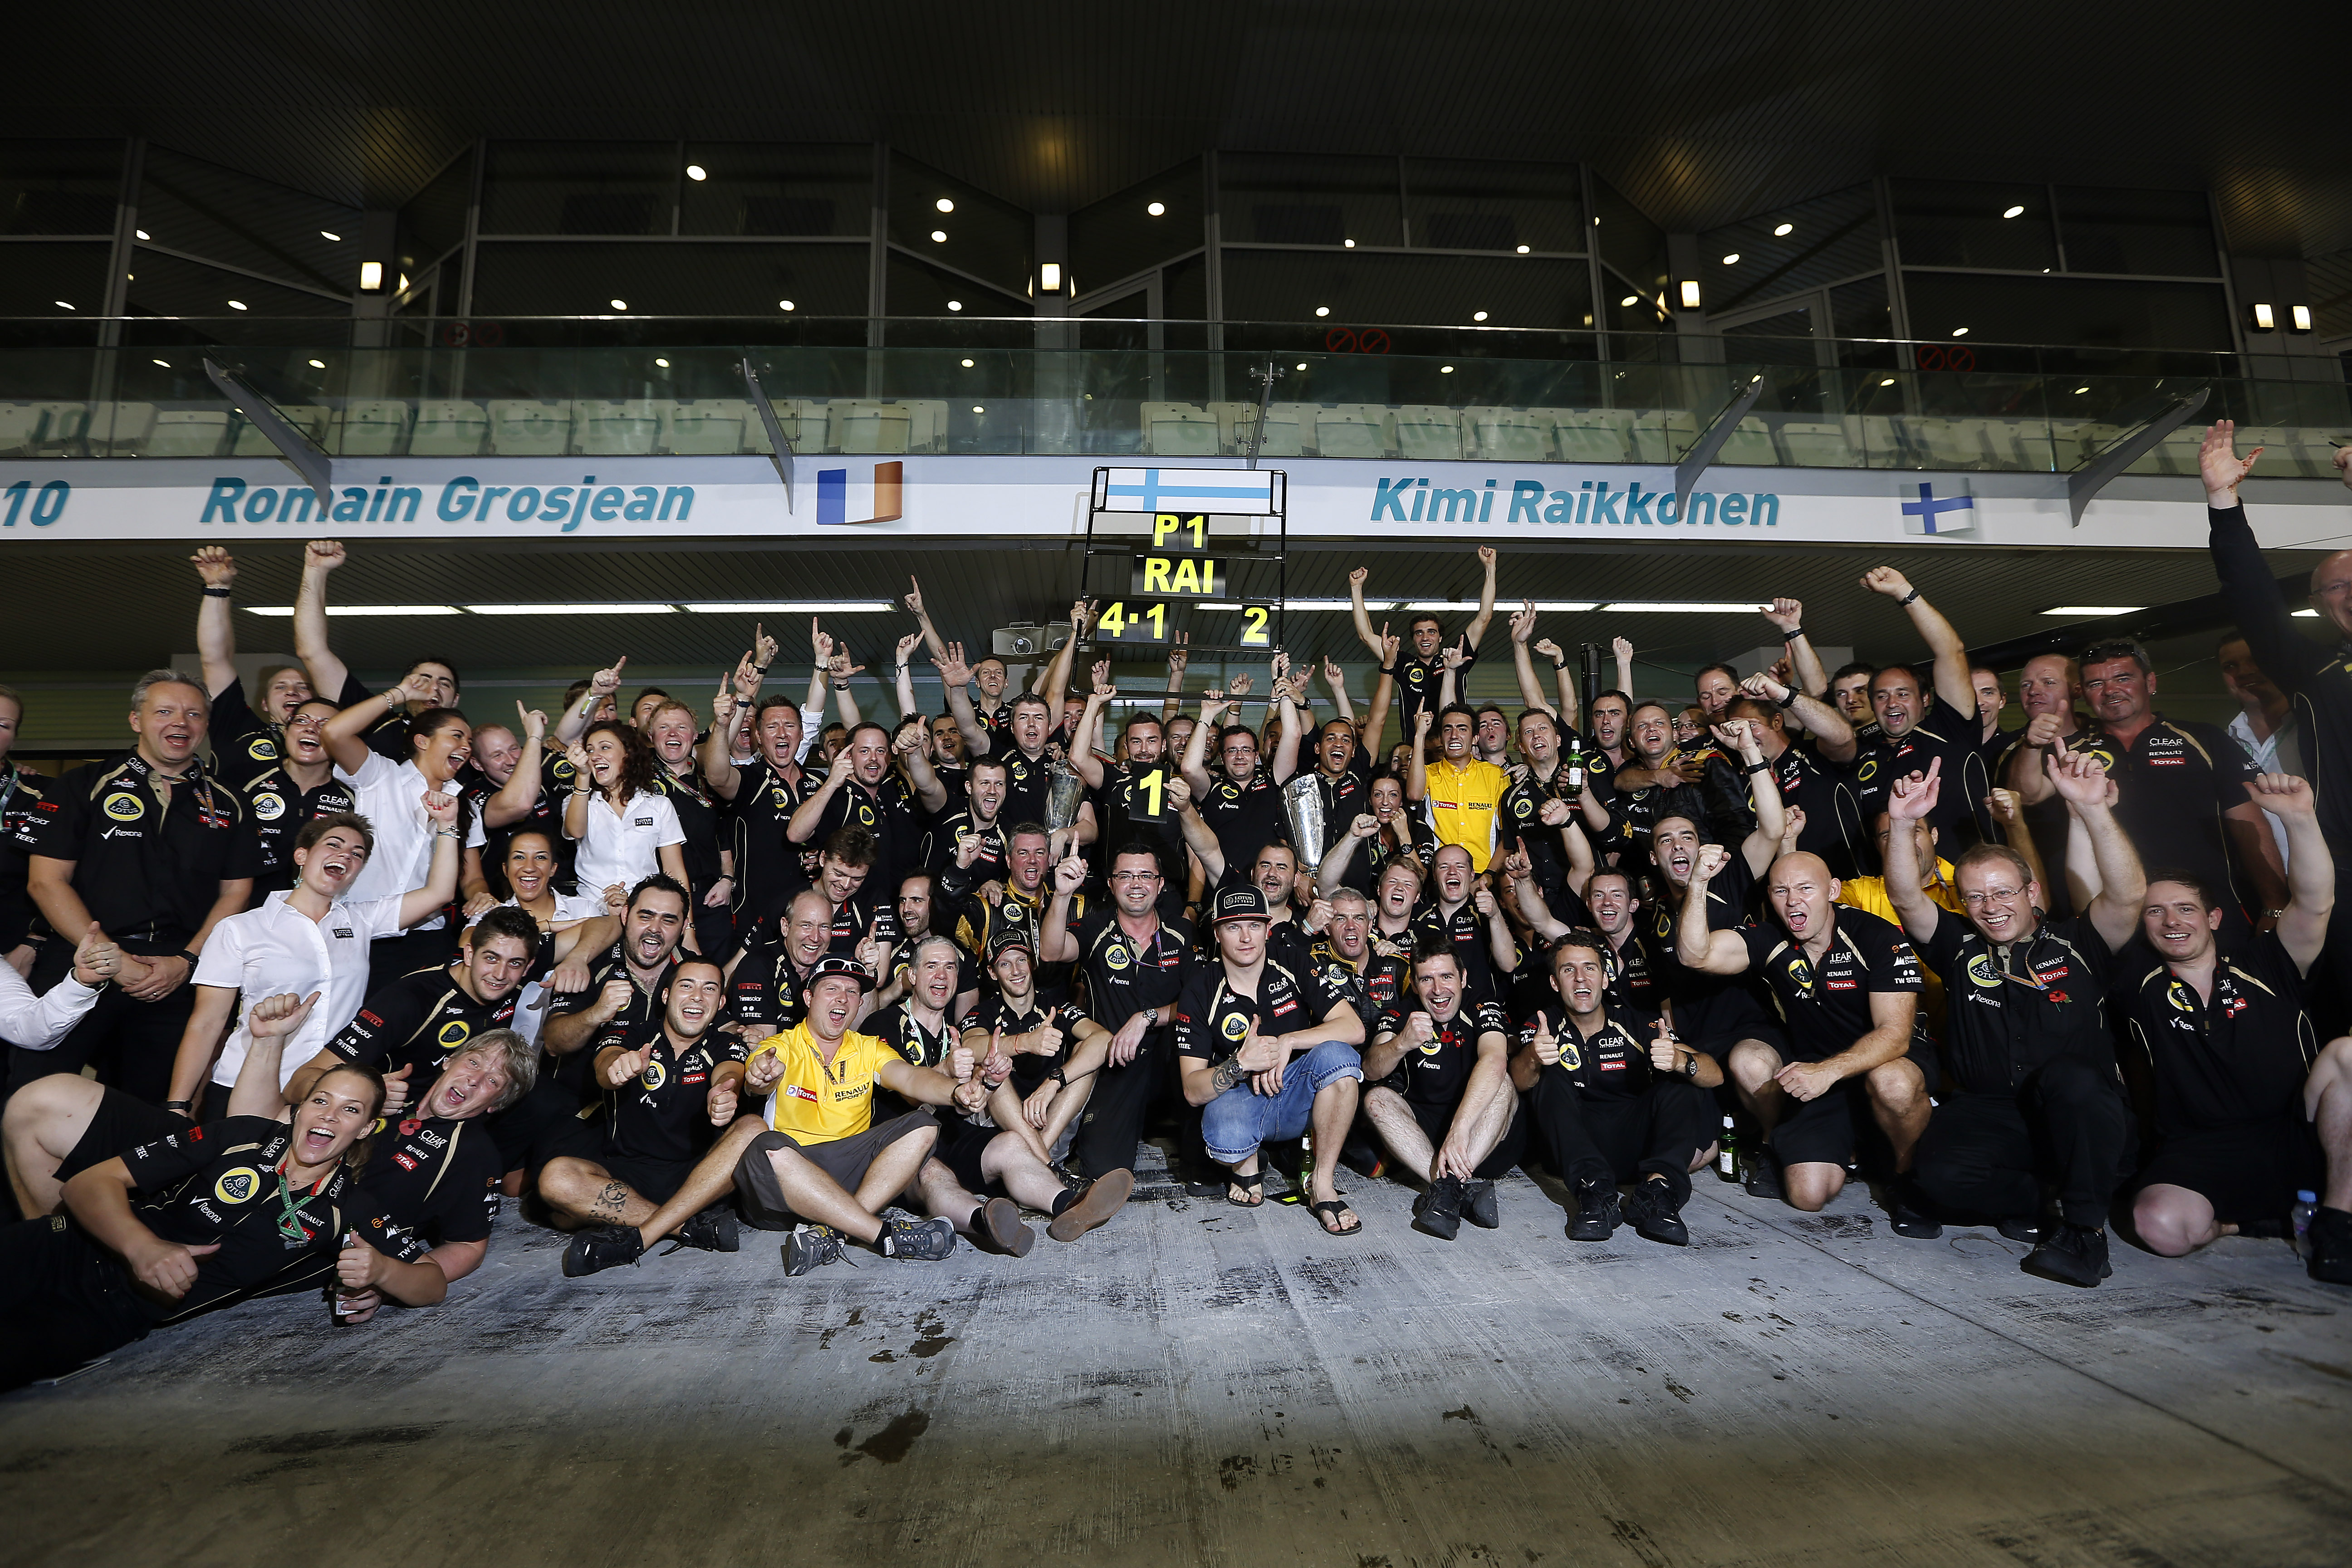 Lotus relieved to end win drought